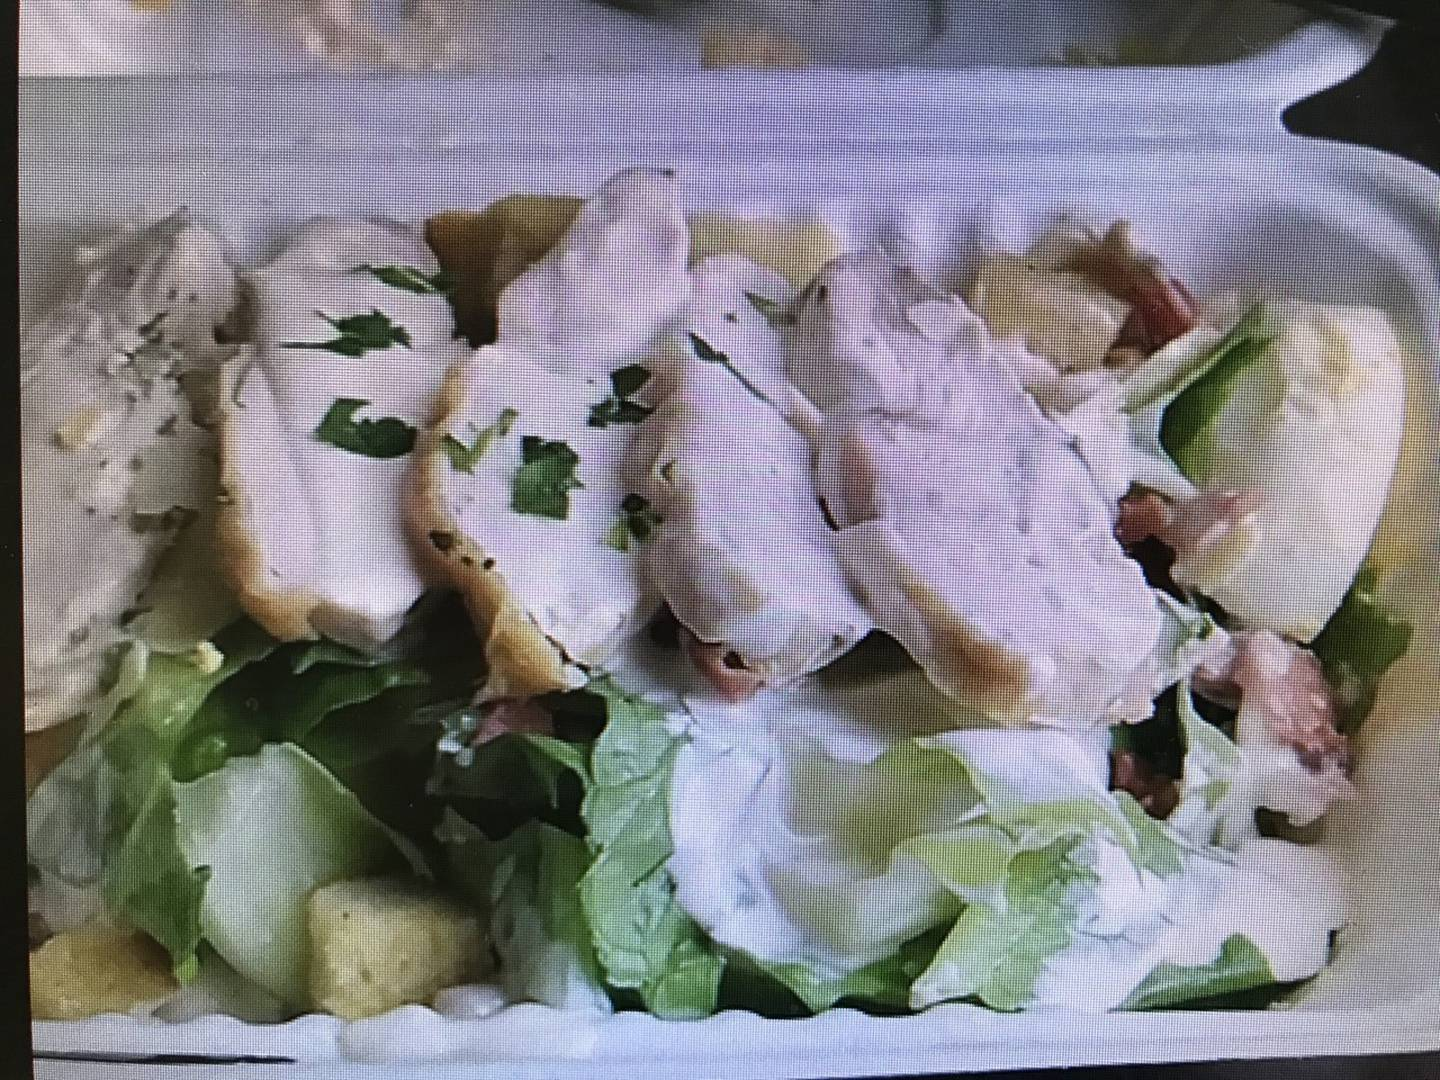 The man's lunch in MIQ at the Crowne Plaza Hotel was a ceaser salad and croutons which the man...